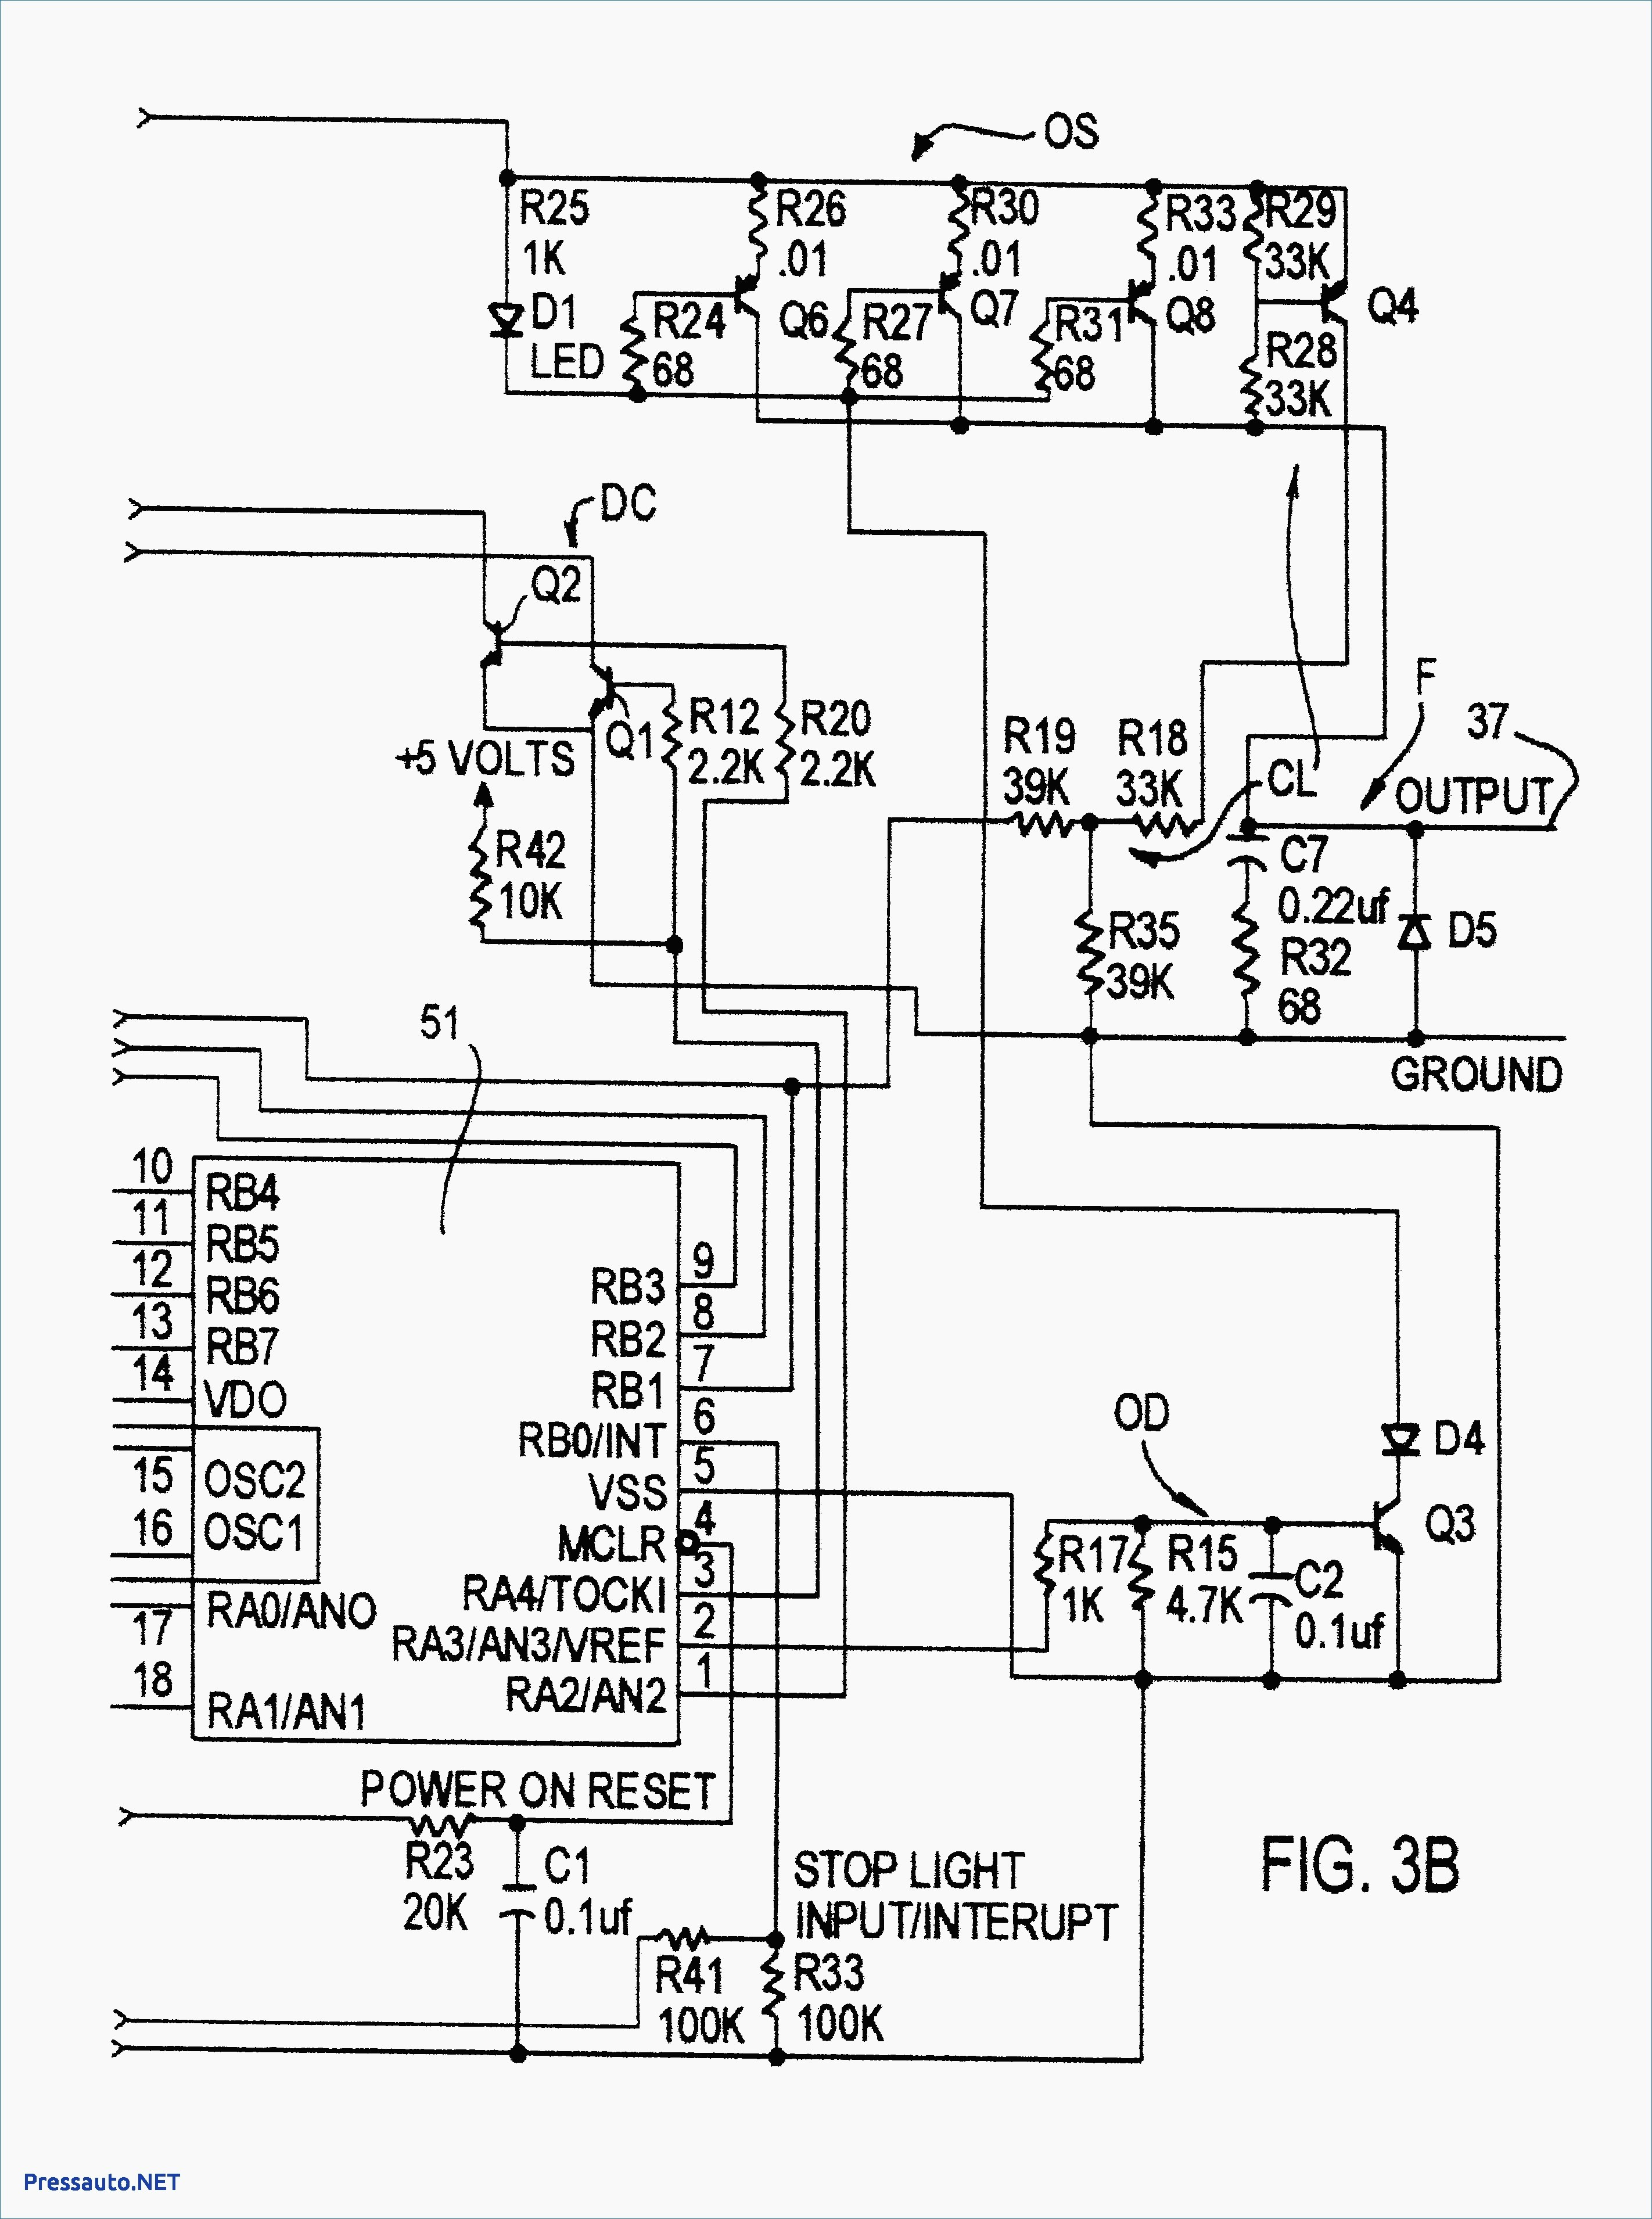 bose acoustimass 10 wiring diagram my wiring diagram grb bunn coffee maker parts list